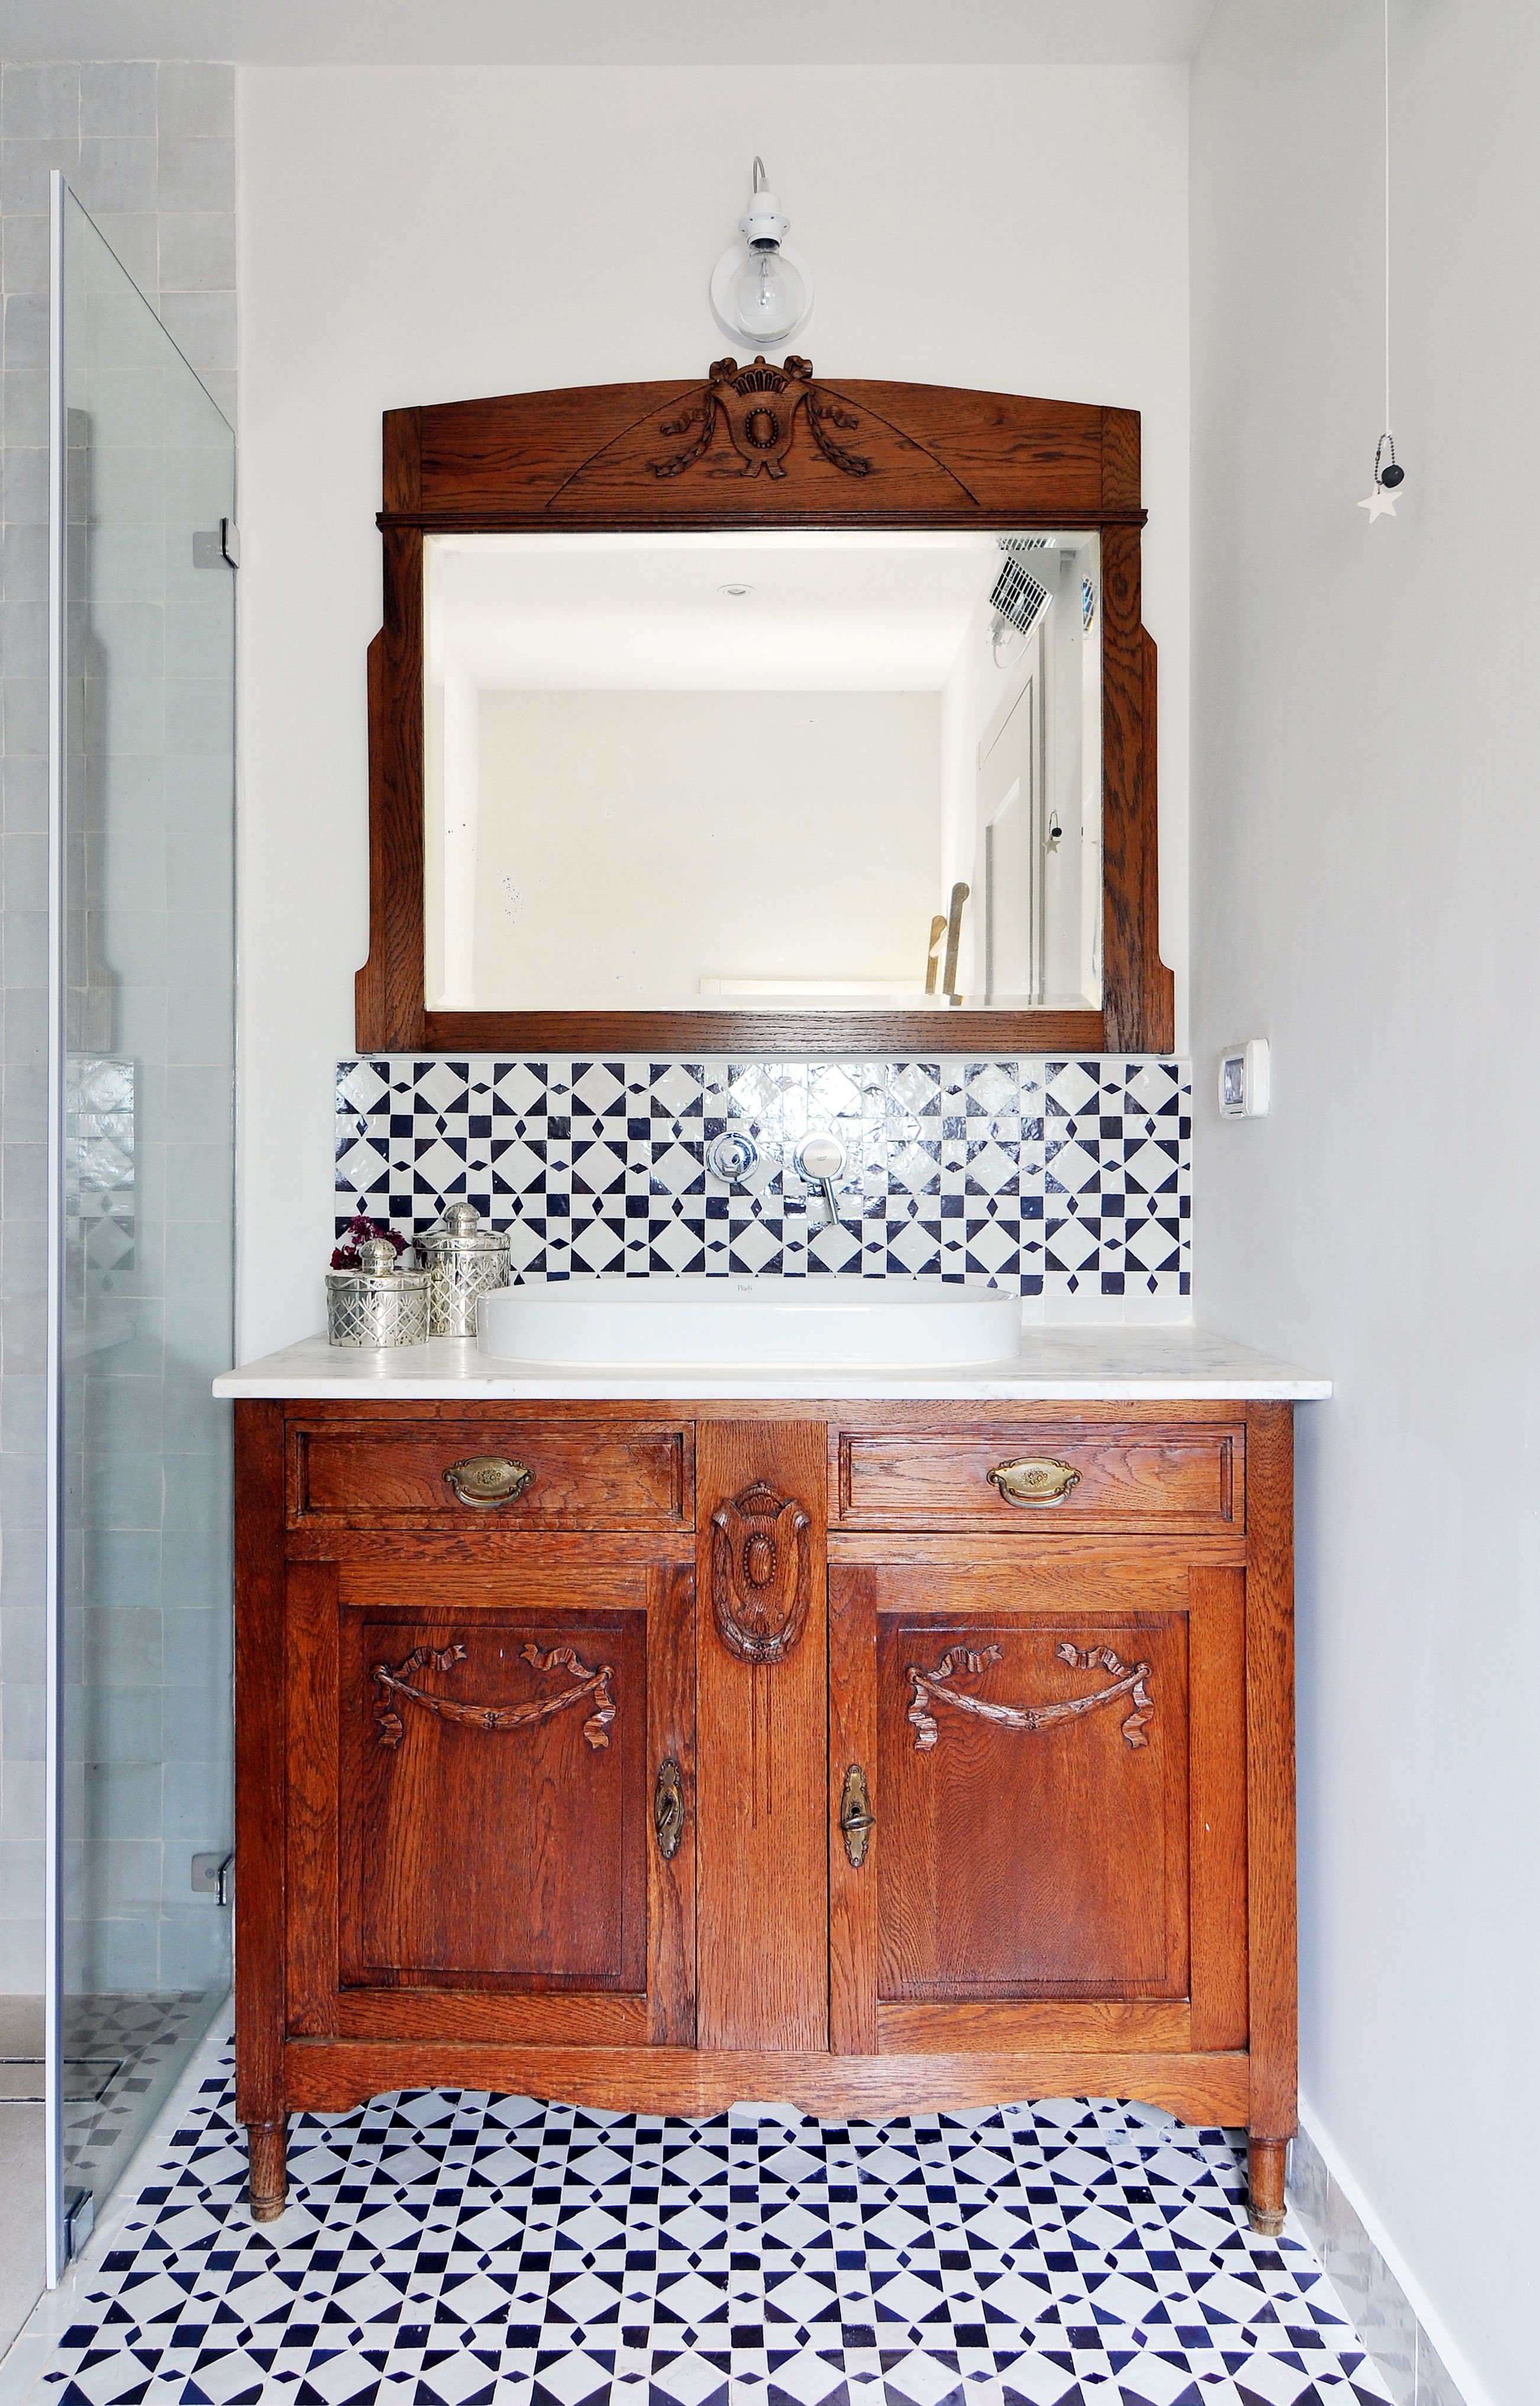 A wooden cabinet in a black and white bathroom. Designed by Liat Hadas, Architecture & Design.